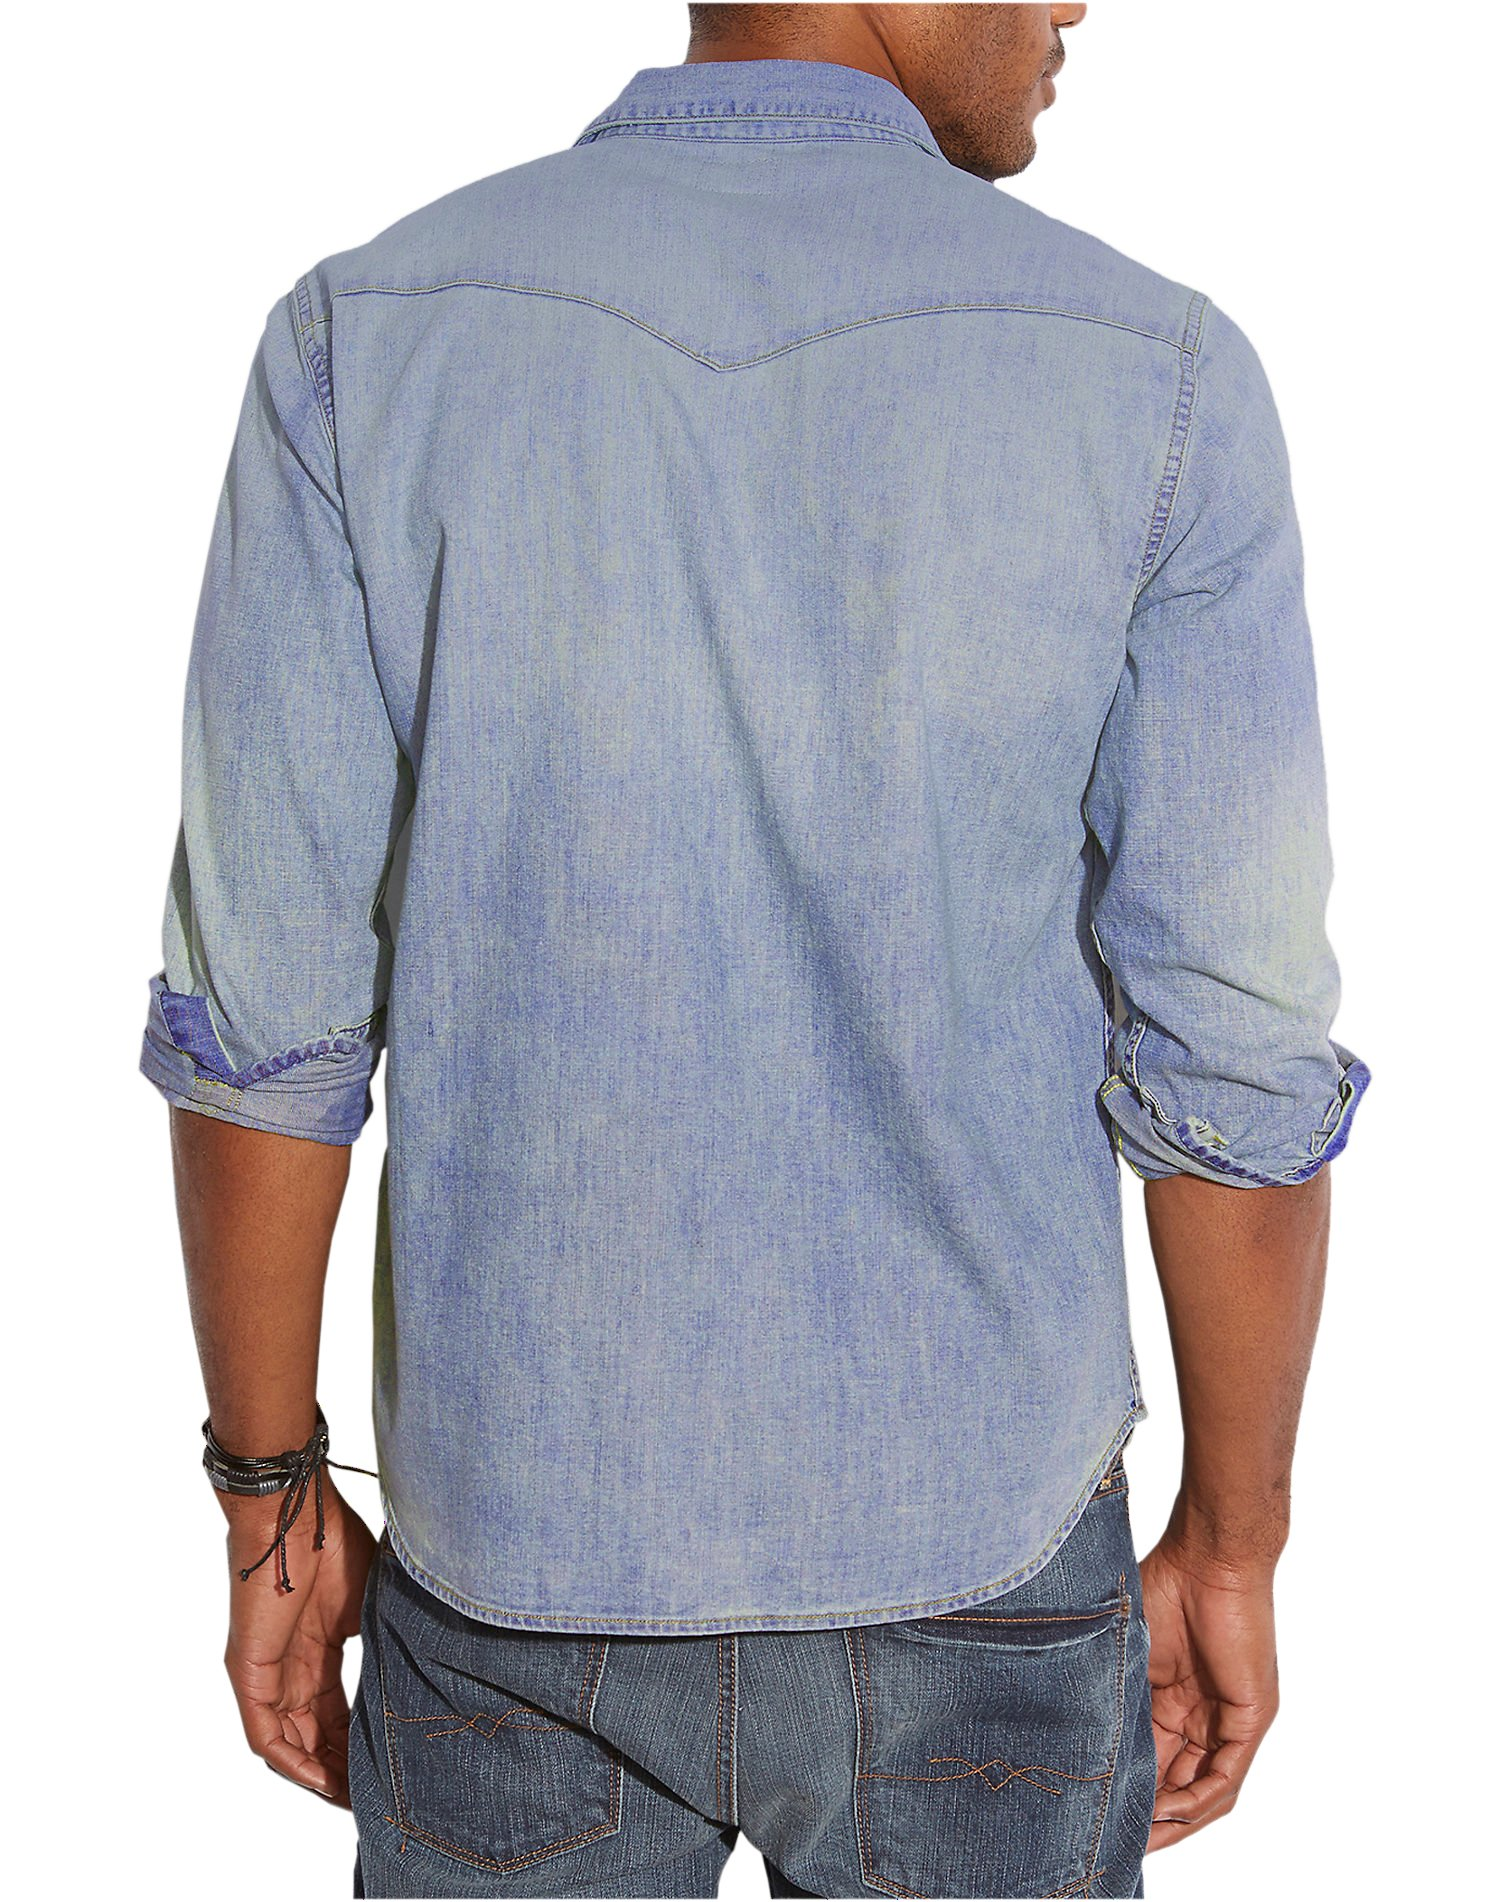 f6599a1f1d27 Workwear Western Shirt WASHED TAN Source · Lucky Brand Men s 7MD10274 Snap  Button Classic Denim Western Shirt